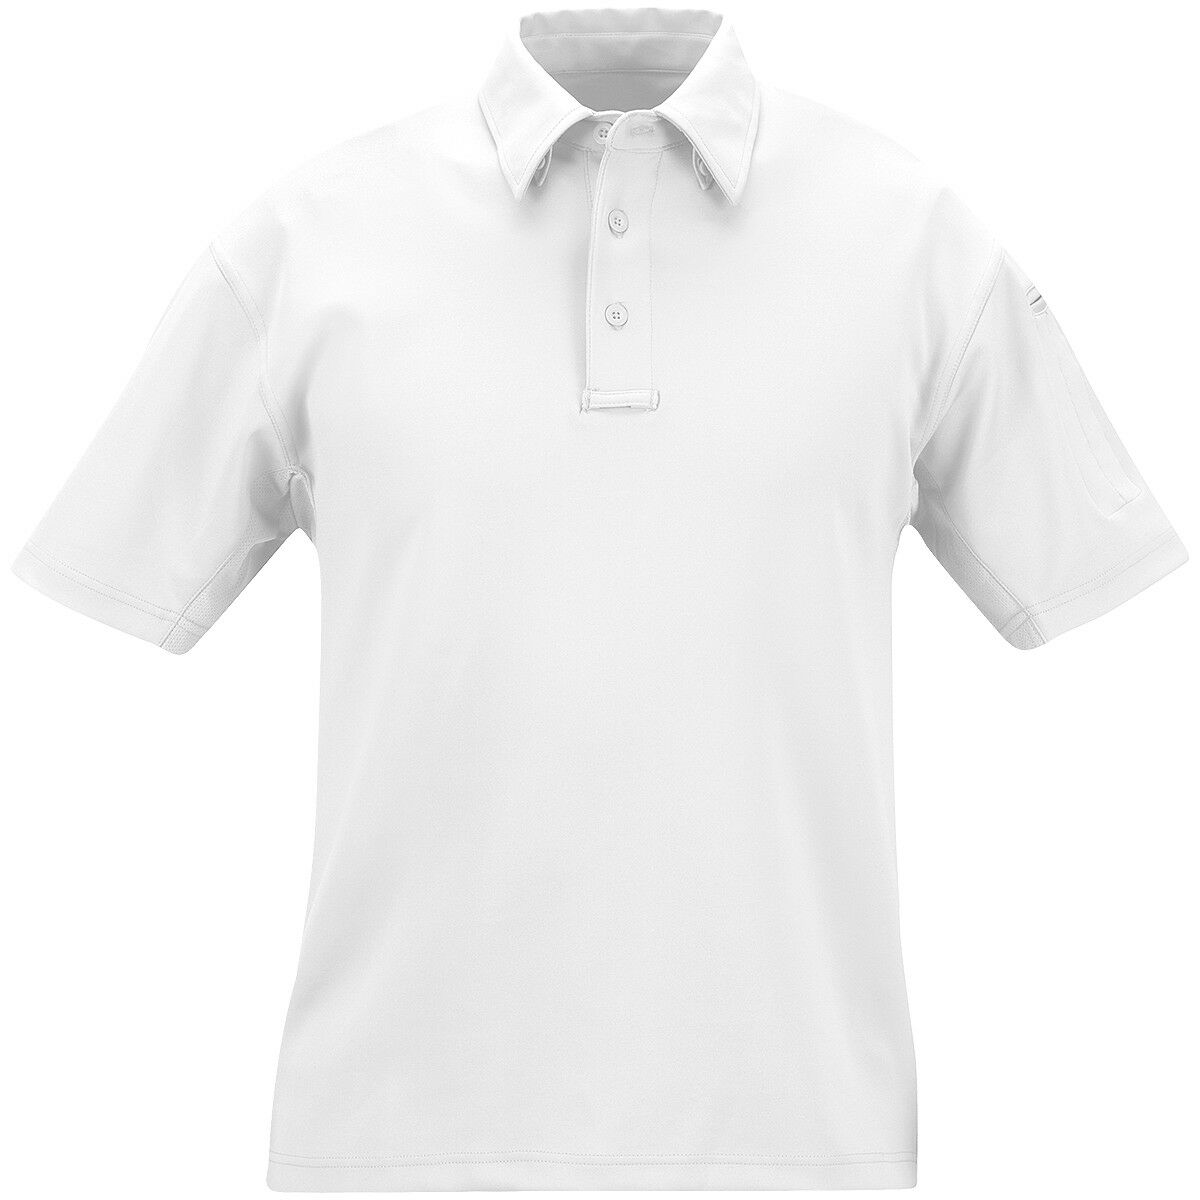 Propper I.C.E. Mens Performance Short Sleeve Polo Army Military Security White